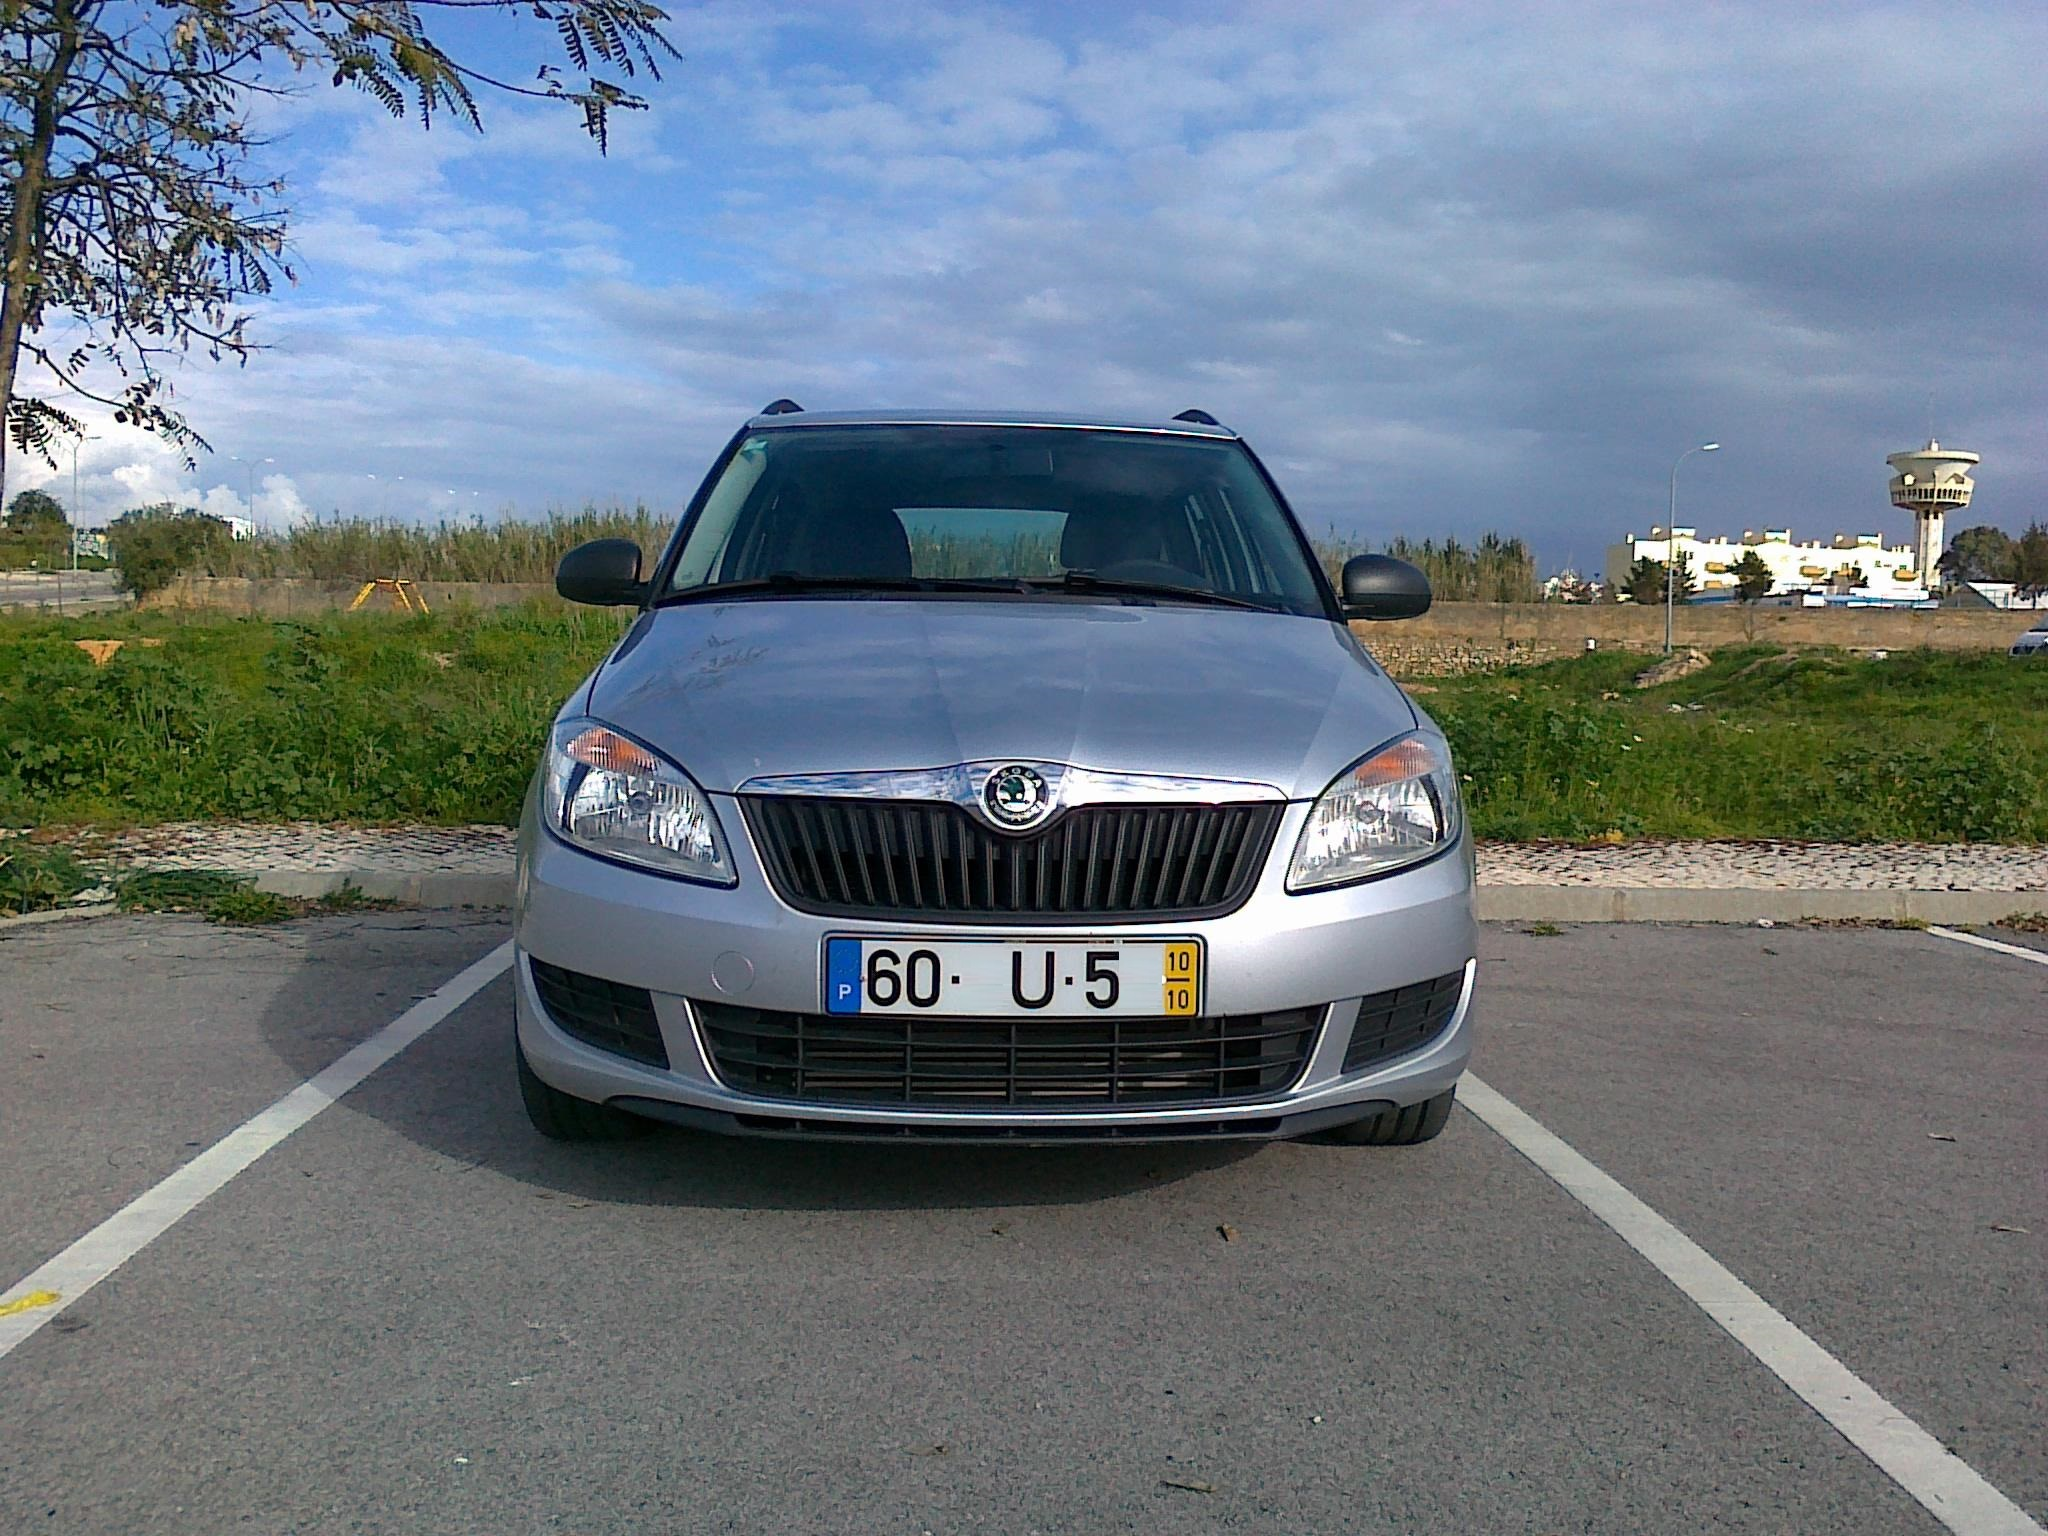 skoda fabia break 1 6 tdi 5 seats resolvcar rent a car. Black Bedroom Furniture Sets. Home Design Ideas